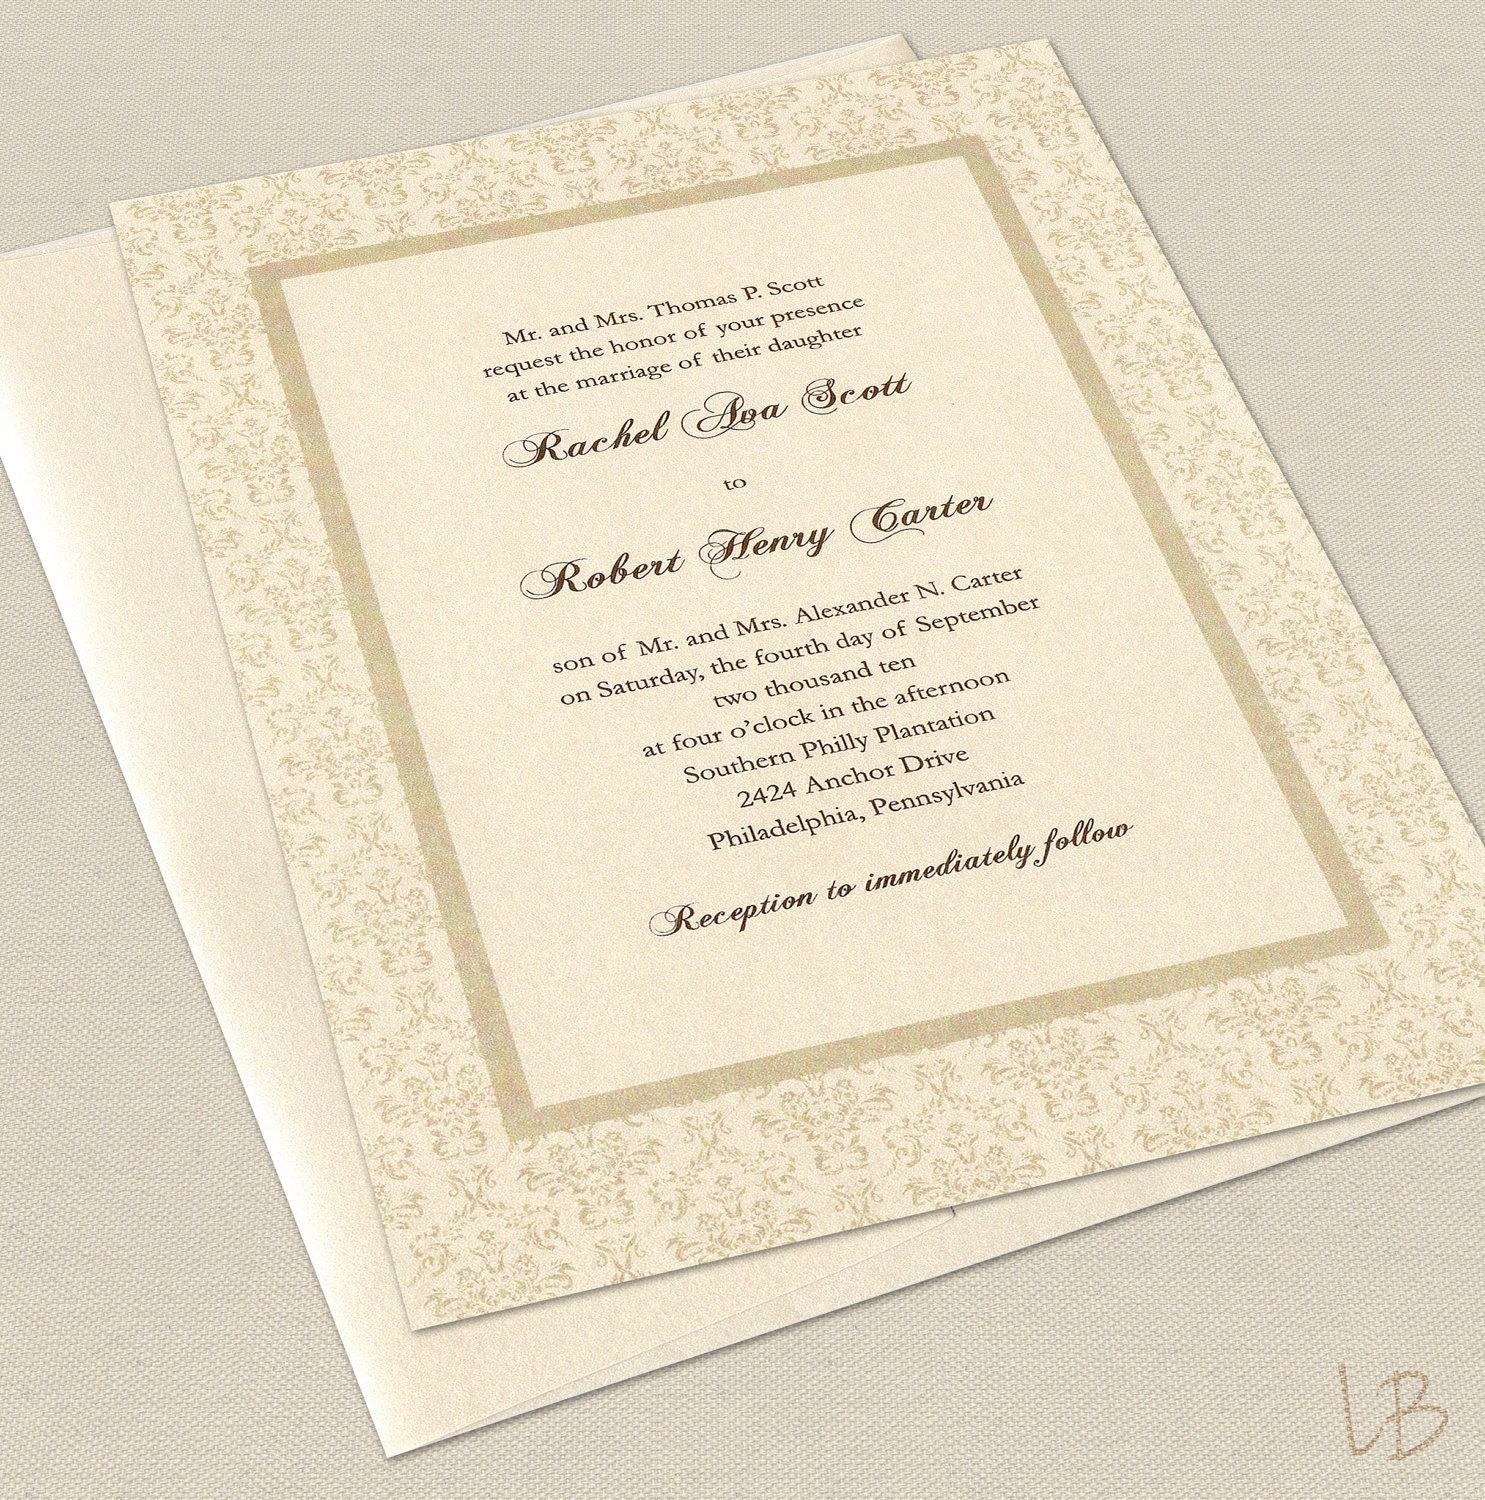 Samples Of Wedding Invites: Formal Wedding Invitation Sample Set By LBcreativepaper On